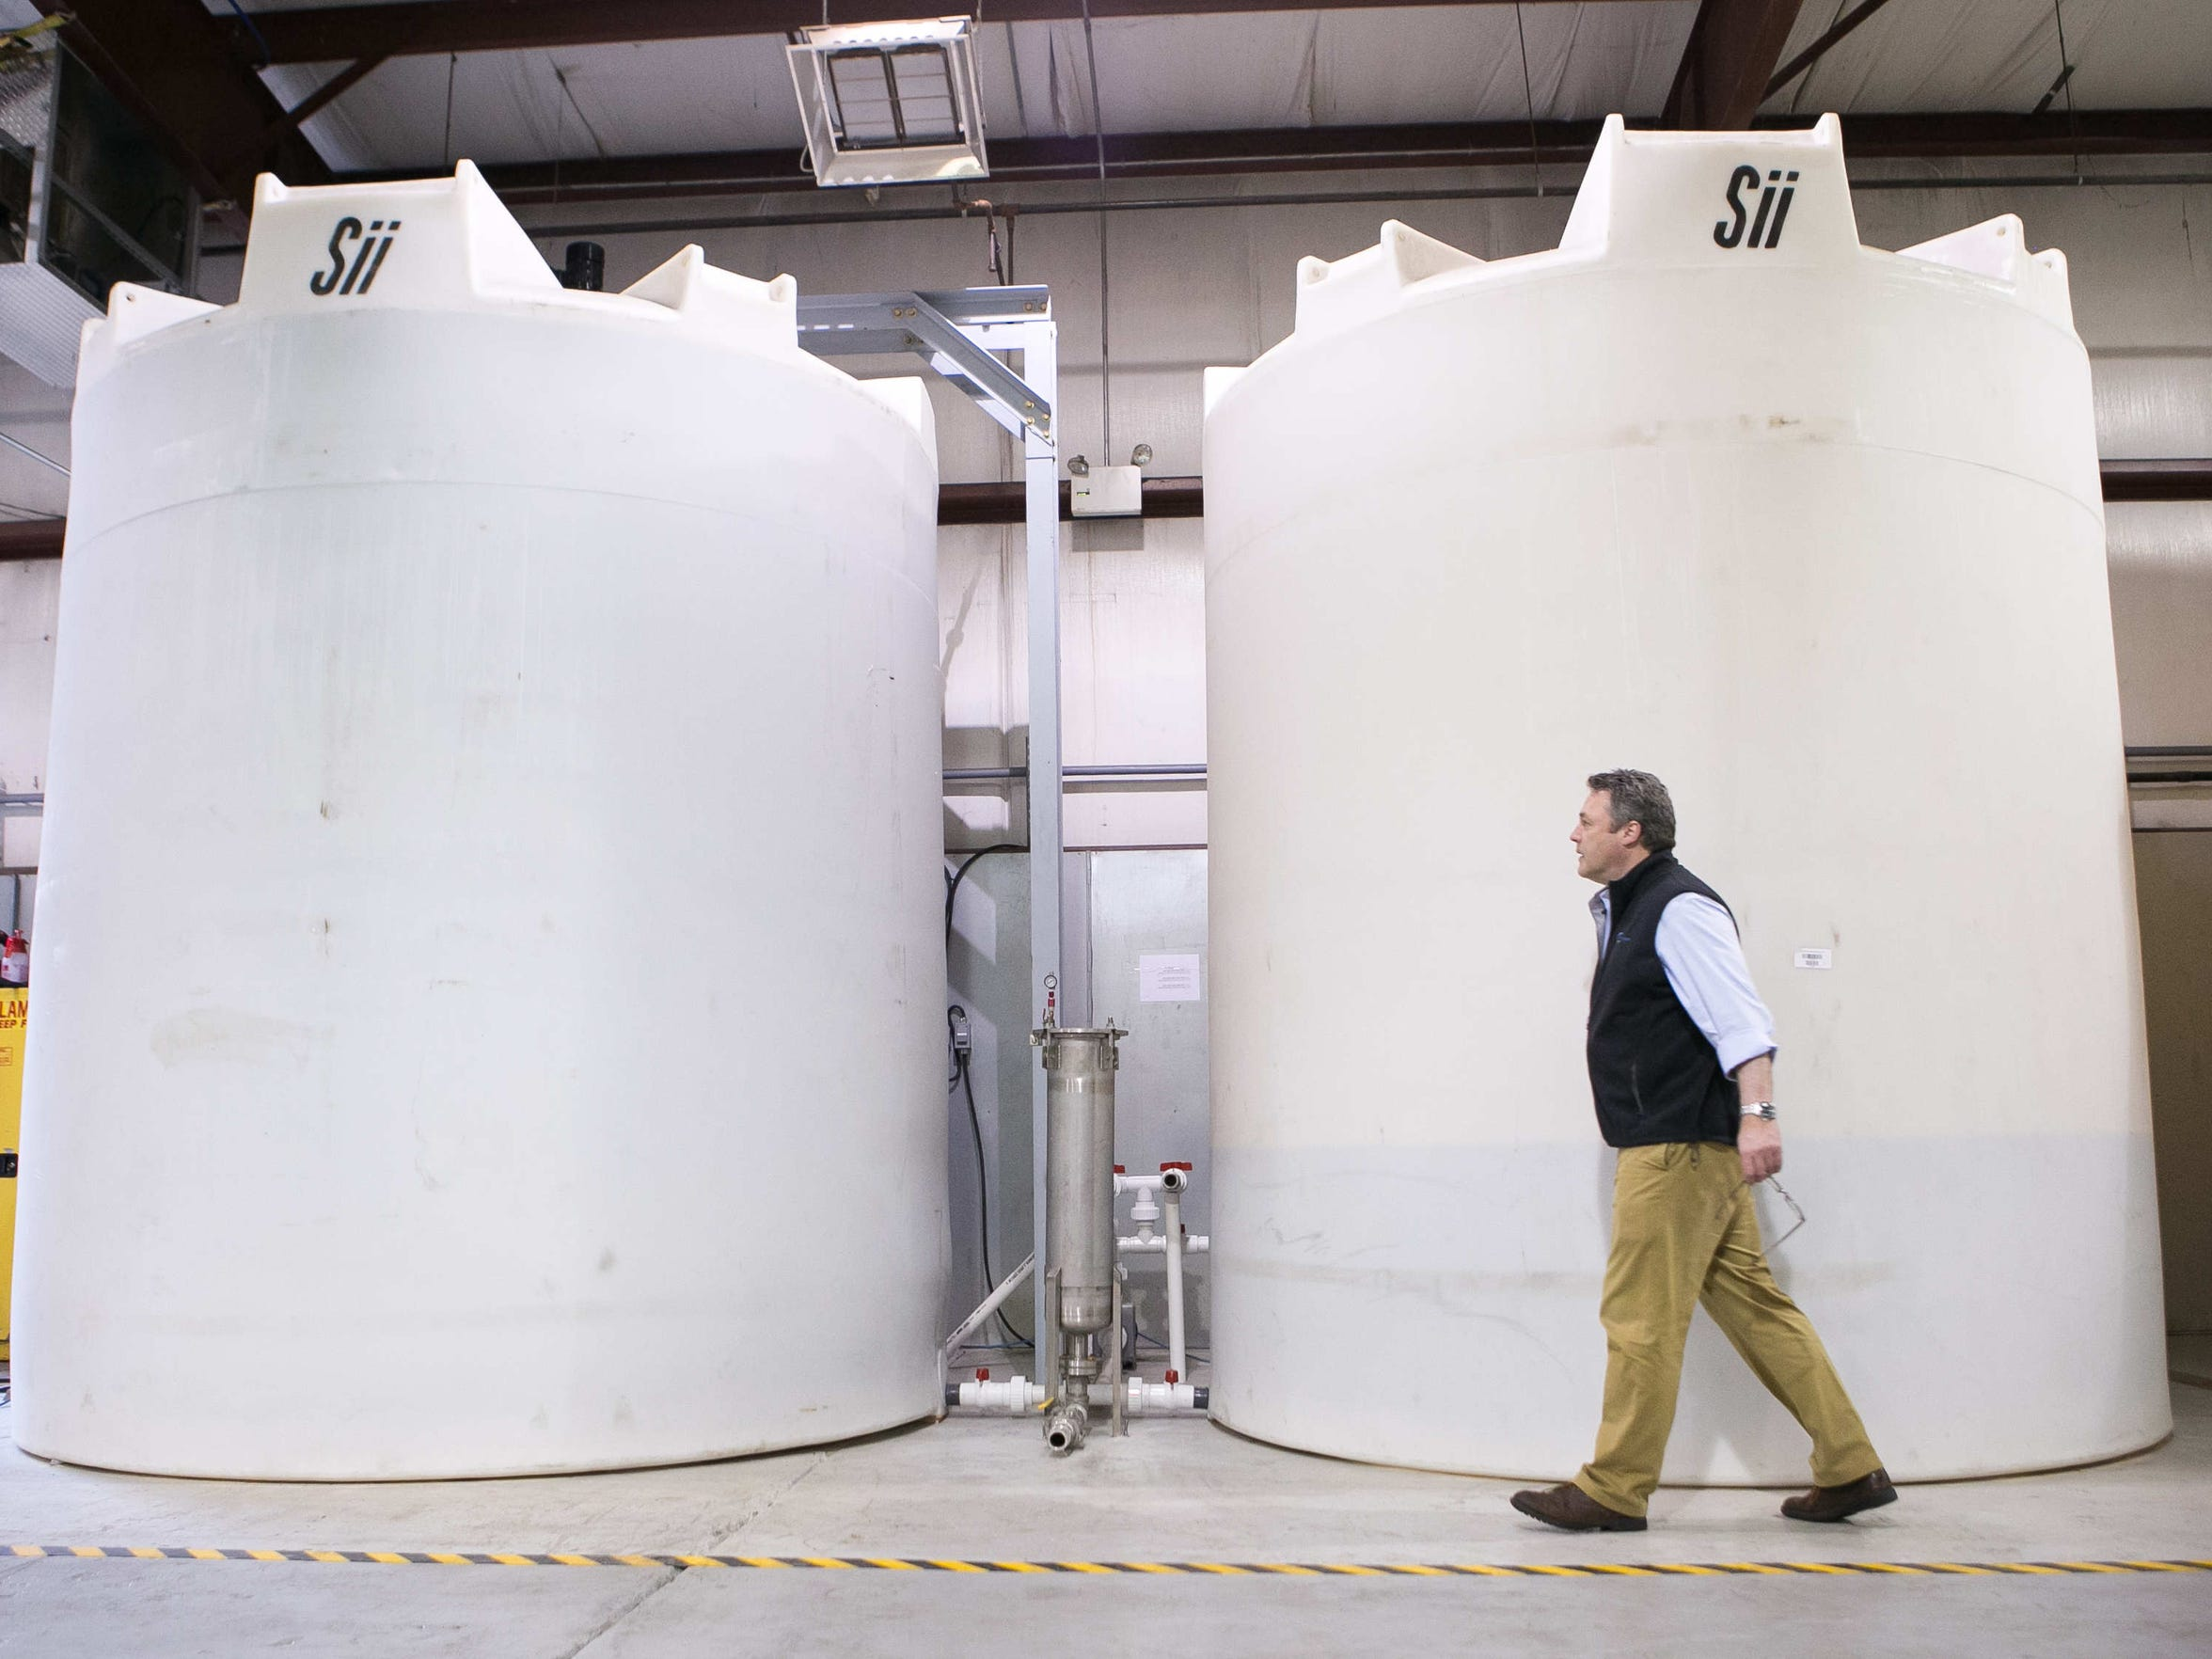 EnviroKure CEO Mark Lupke walks by tanks storing up to 6,500 gallons of liquid fertilizer. The startup plans to open a facility in Harrington next year where poultry poop will be converted into liquid fertilizer.